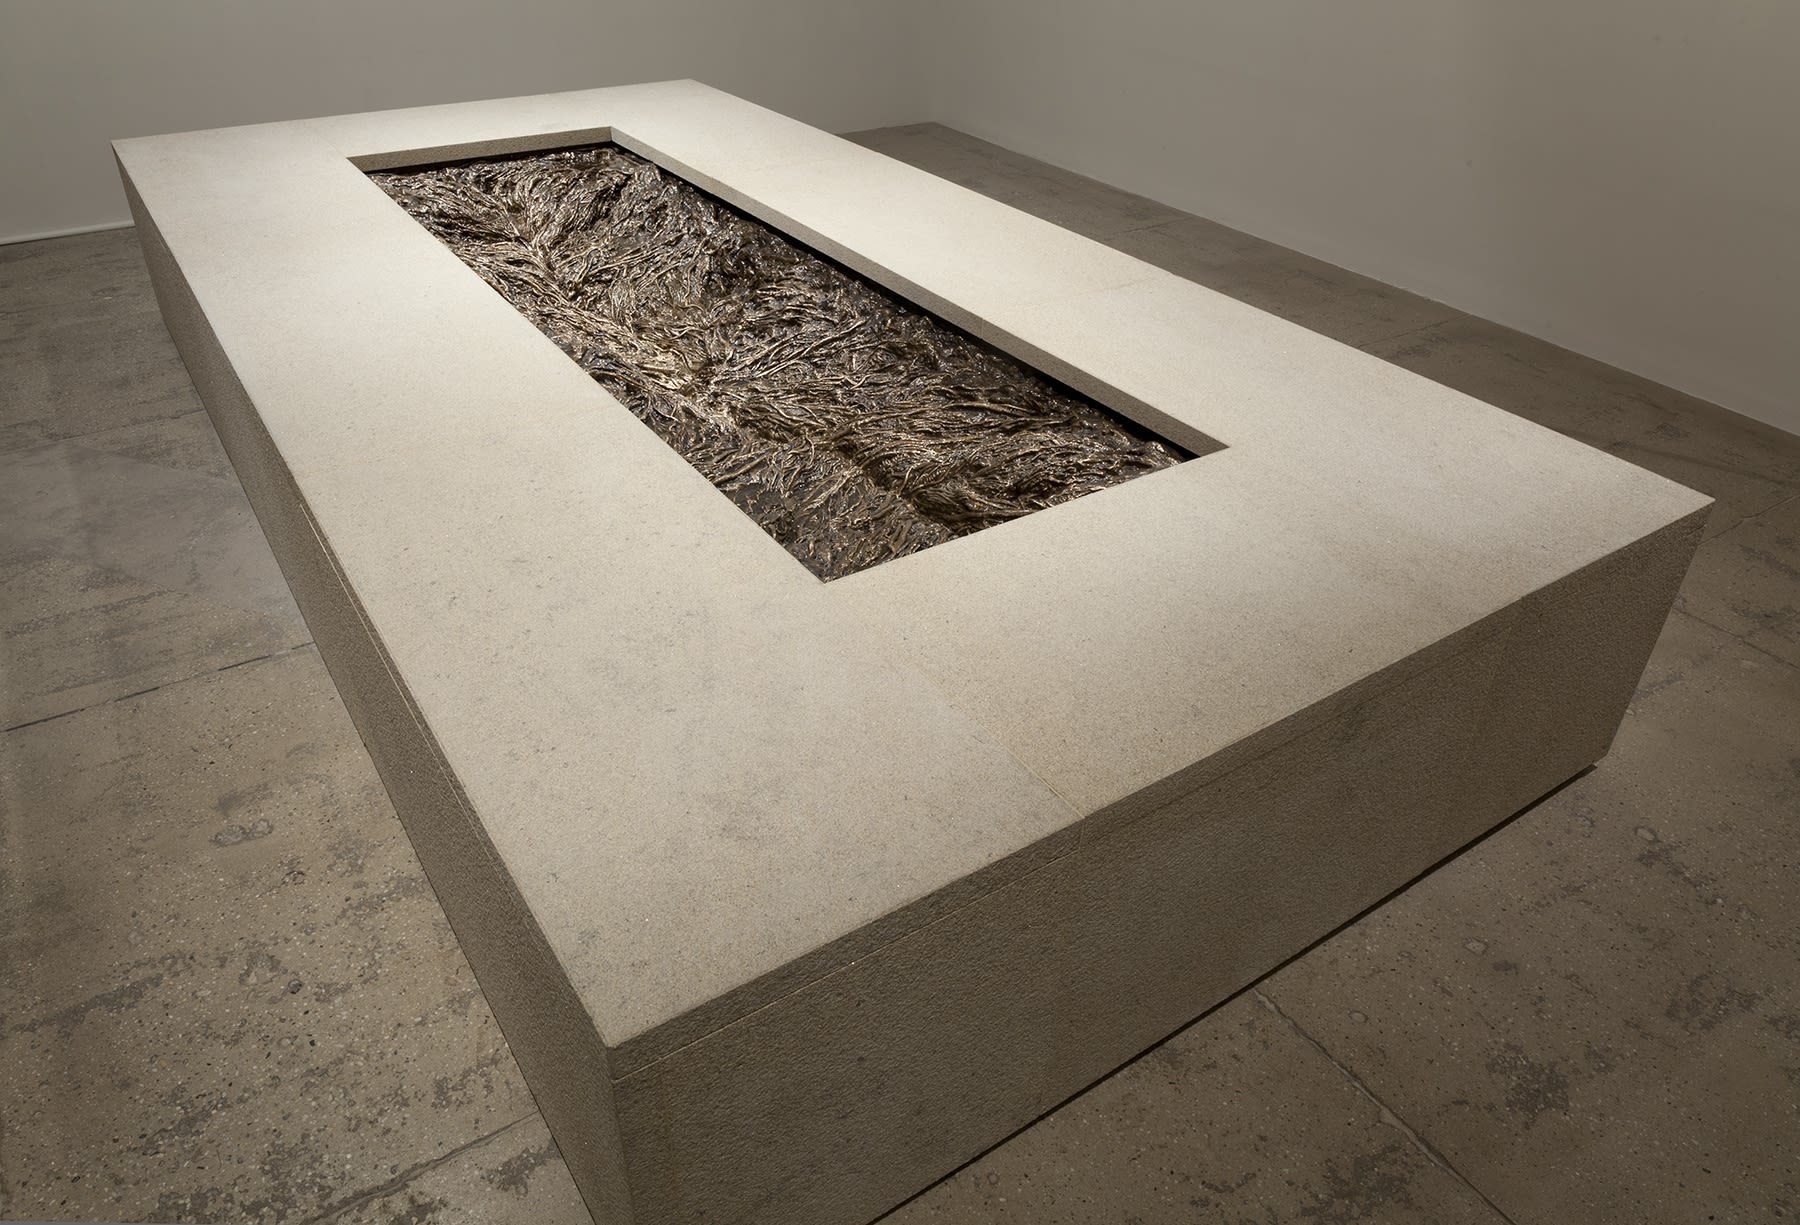 A rectangular cut away reveals a system of cast roots in a large concrete slab.